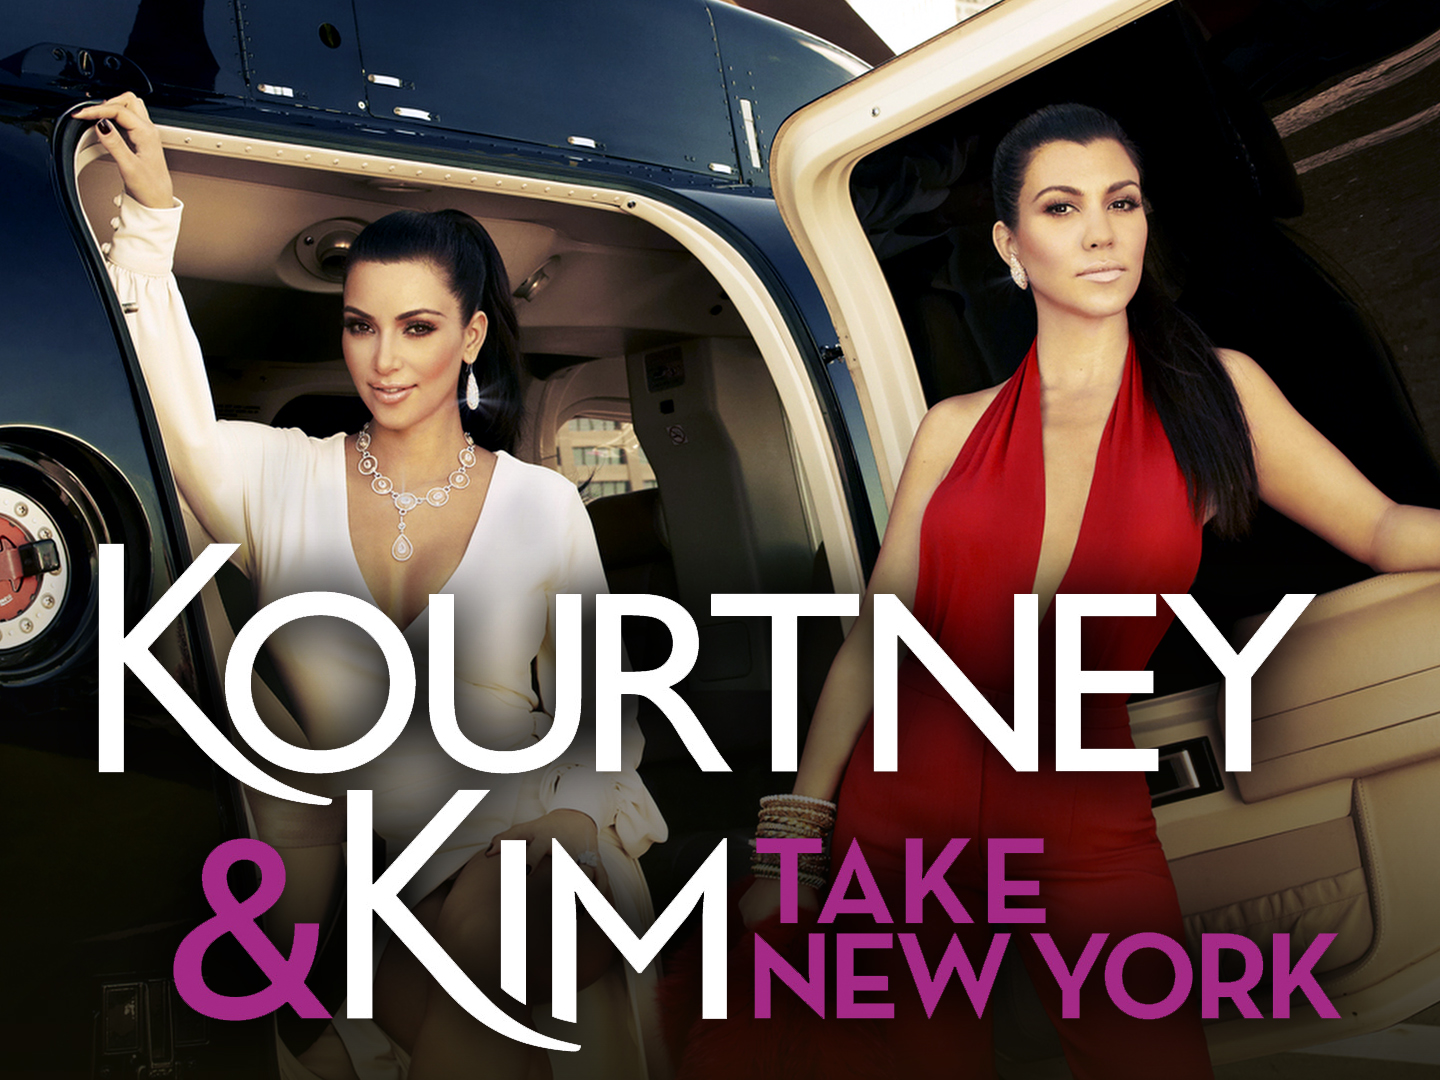 Kourtney & Kim Take New York: Season 1